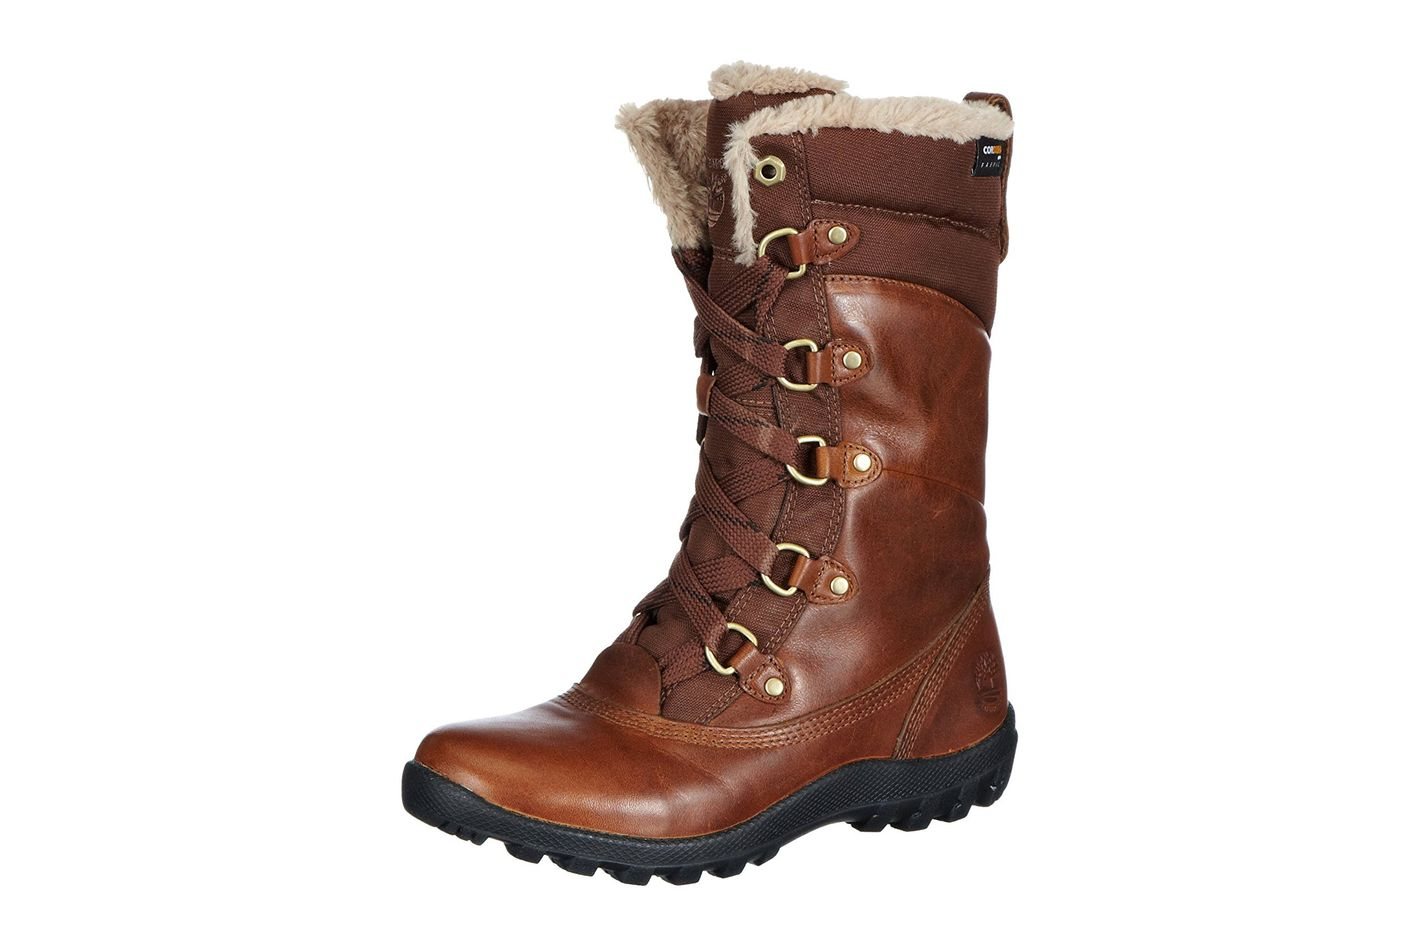 85bc361c4bd Best leather snow boot. Timberland Women s MT Hope Mid Waterproof Boot